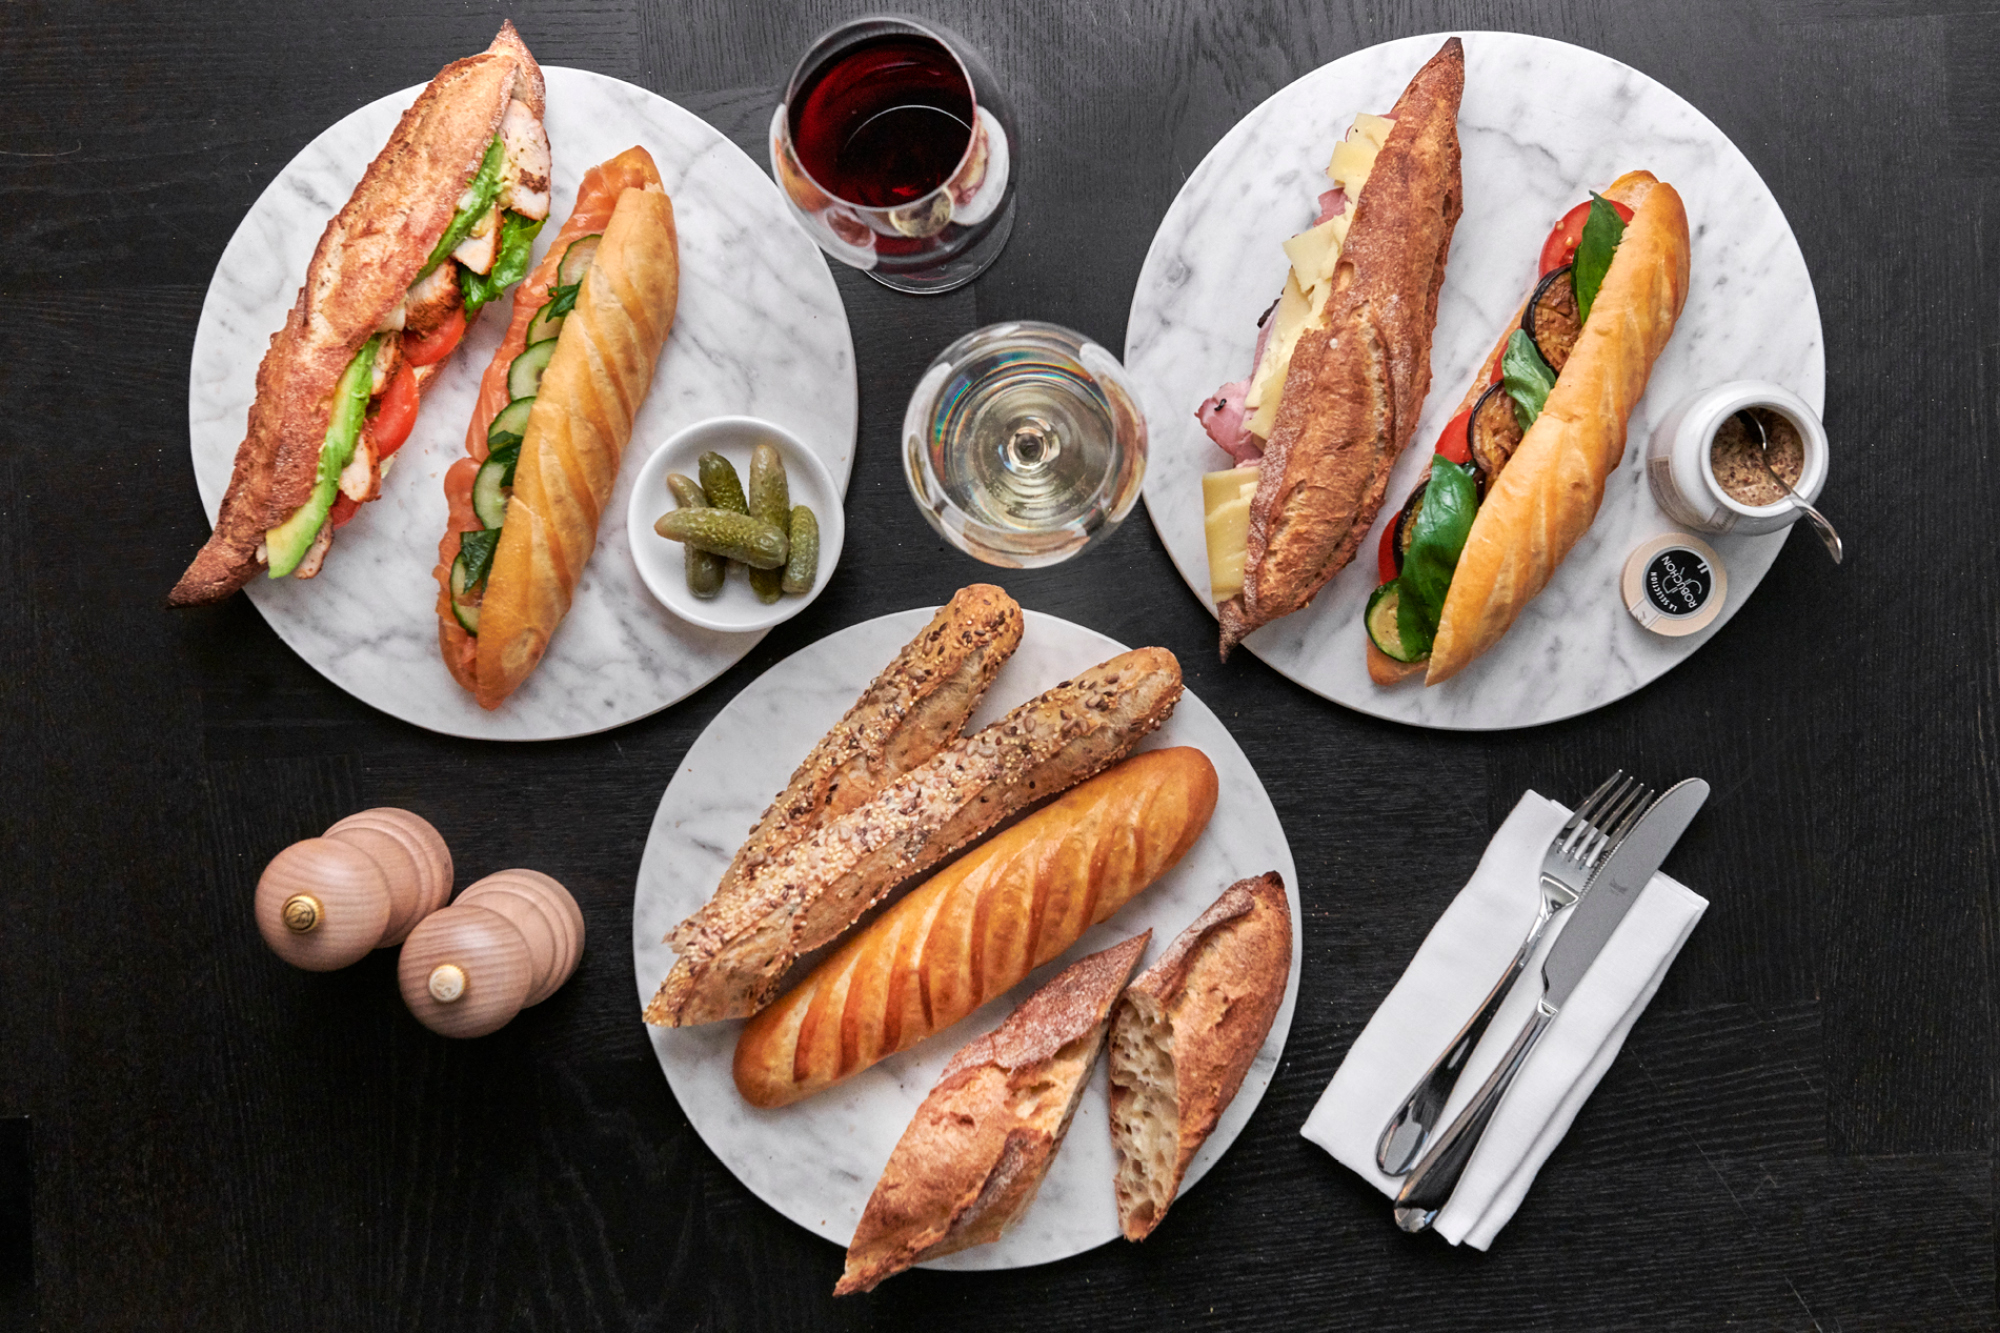 The finest French fare from Le Deli Robuchon